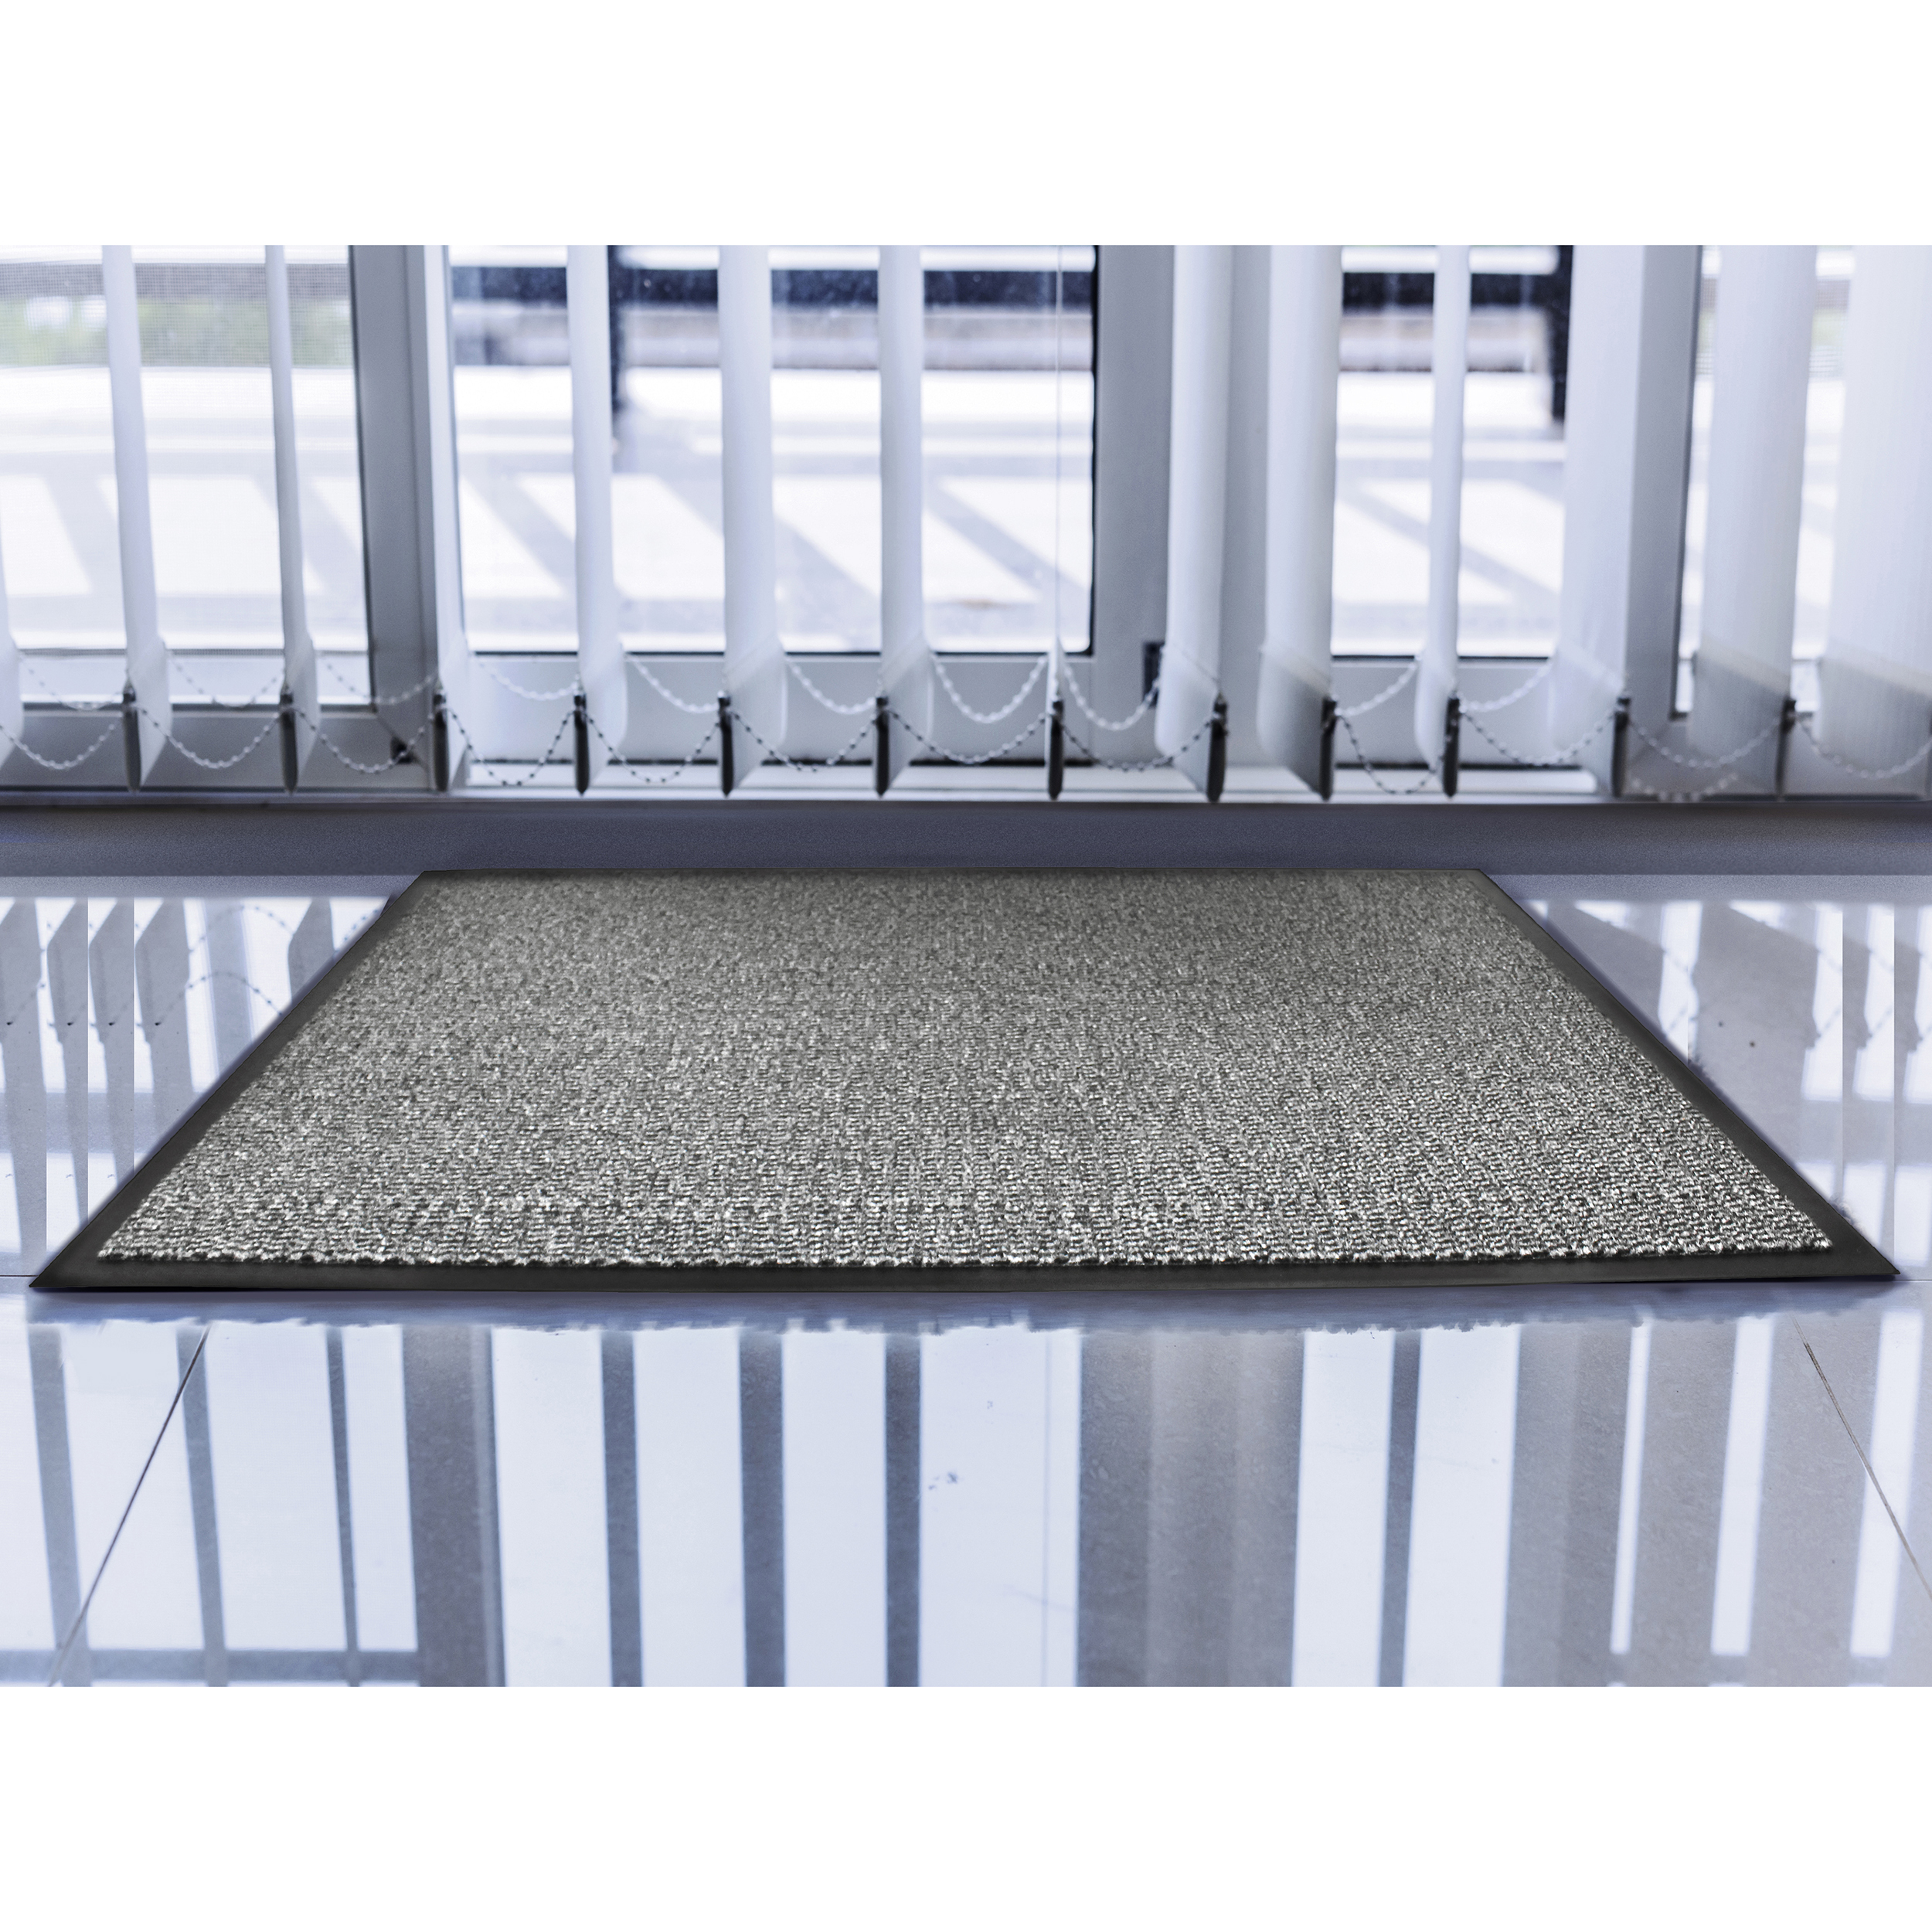 Indoor Doortex Advantagemat Door Mat for Dust & Moisture Polypropylene 900x1500mm Anthracite Ref FC49150DCBWV